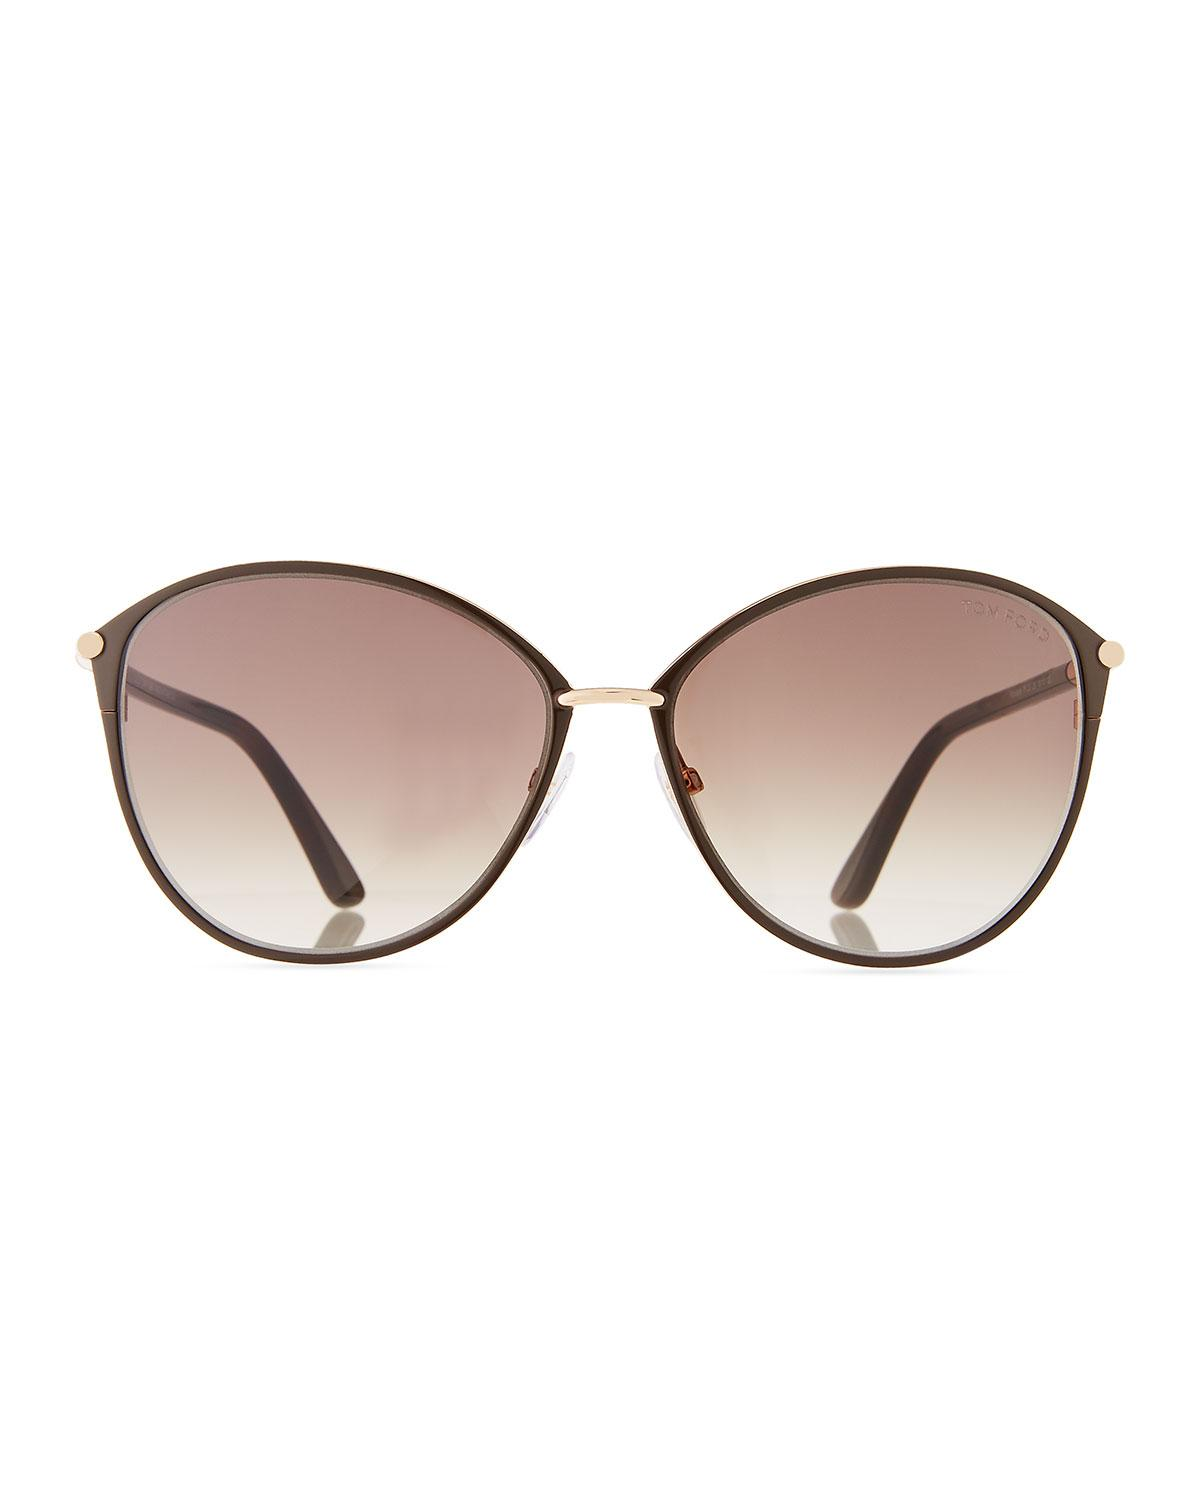 3a582b3c24601 Lyst - Tom Ford Penelope Metal Butterfly Sunglasses in Black